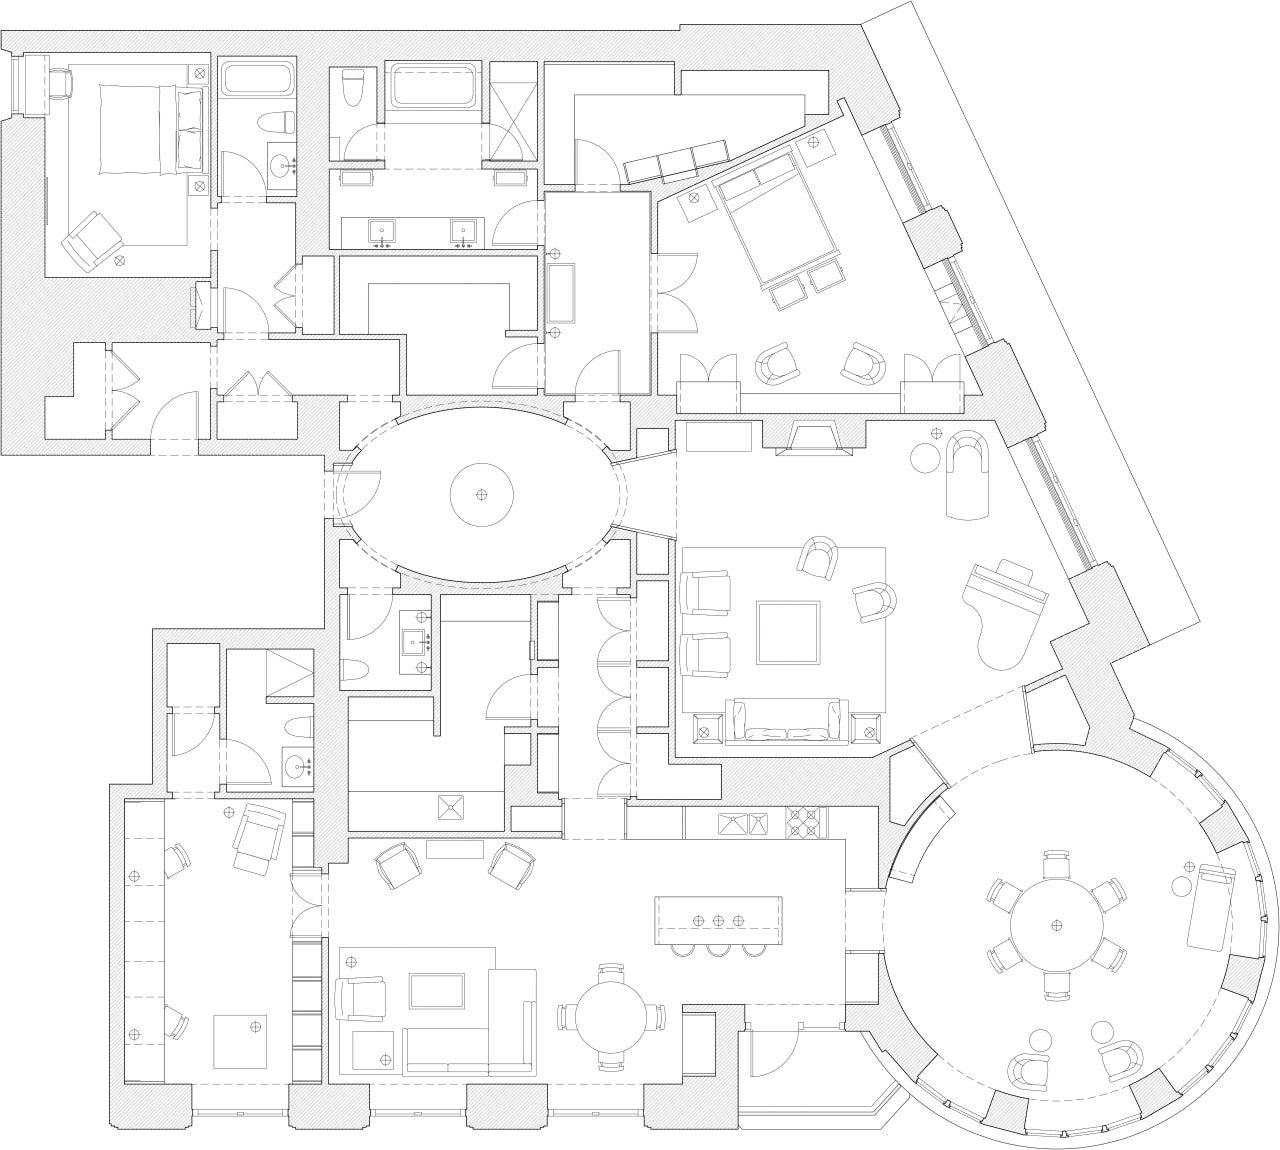 Image of the house plan. area, black and white, design, diagram, drawing, floor plan, line, line art, plan, product, product design, structure, technical drawing, white